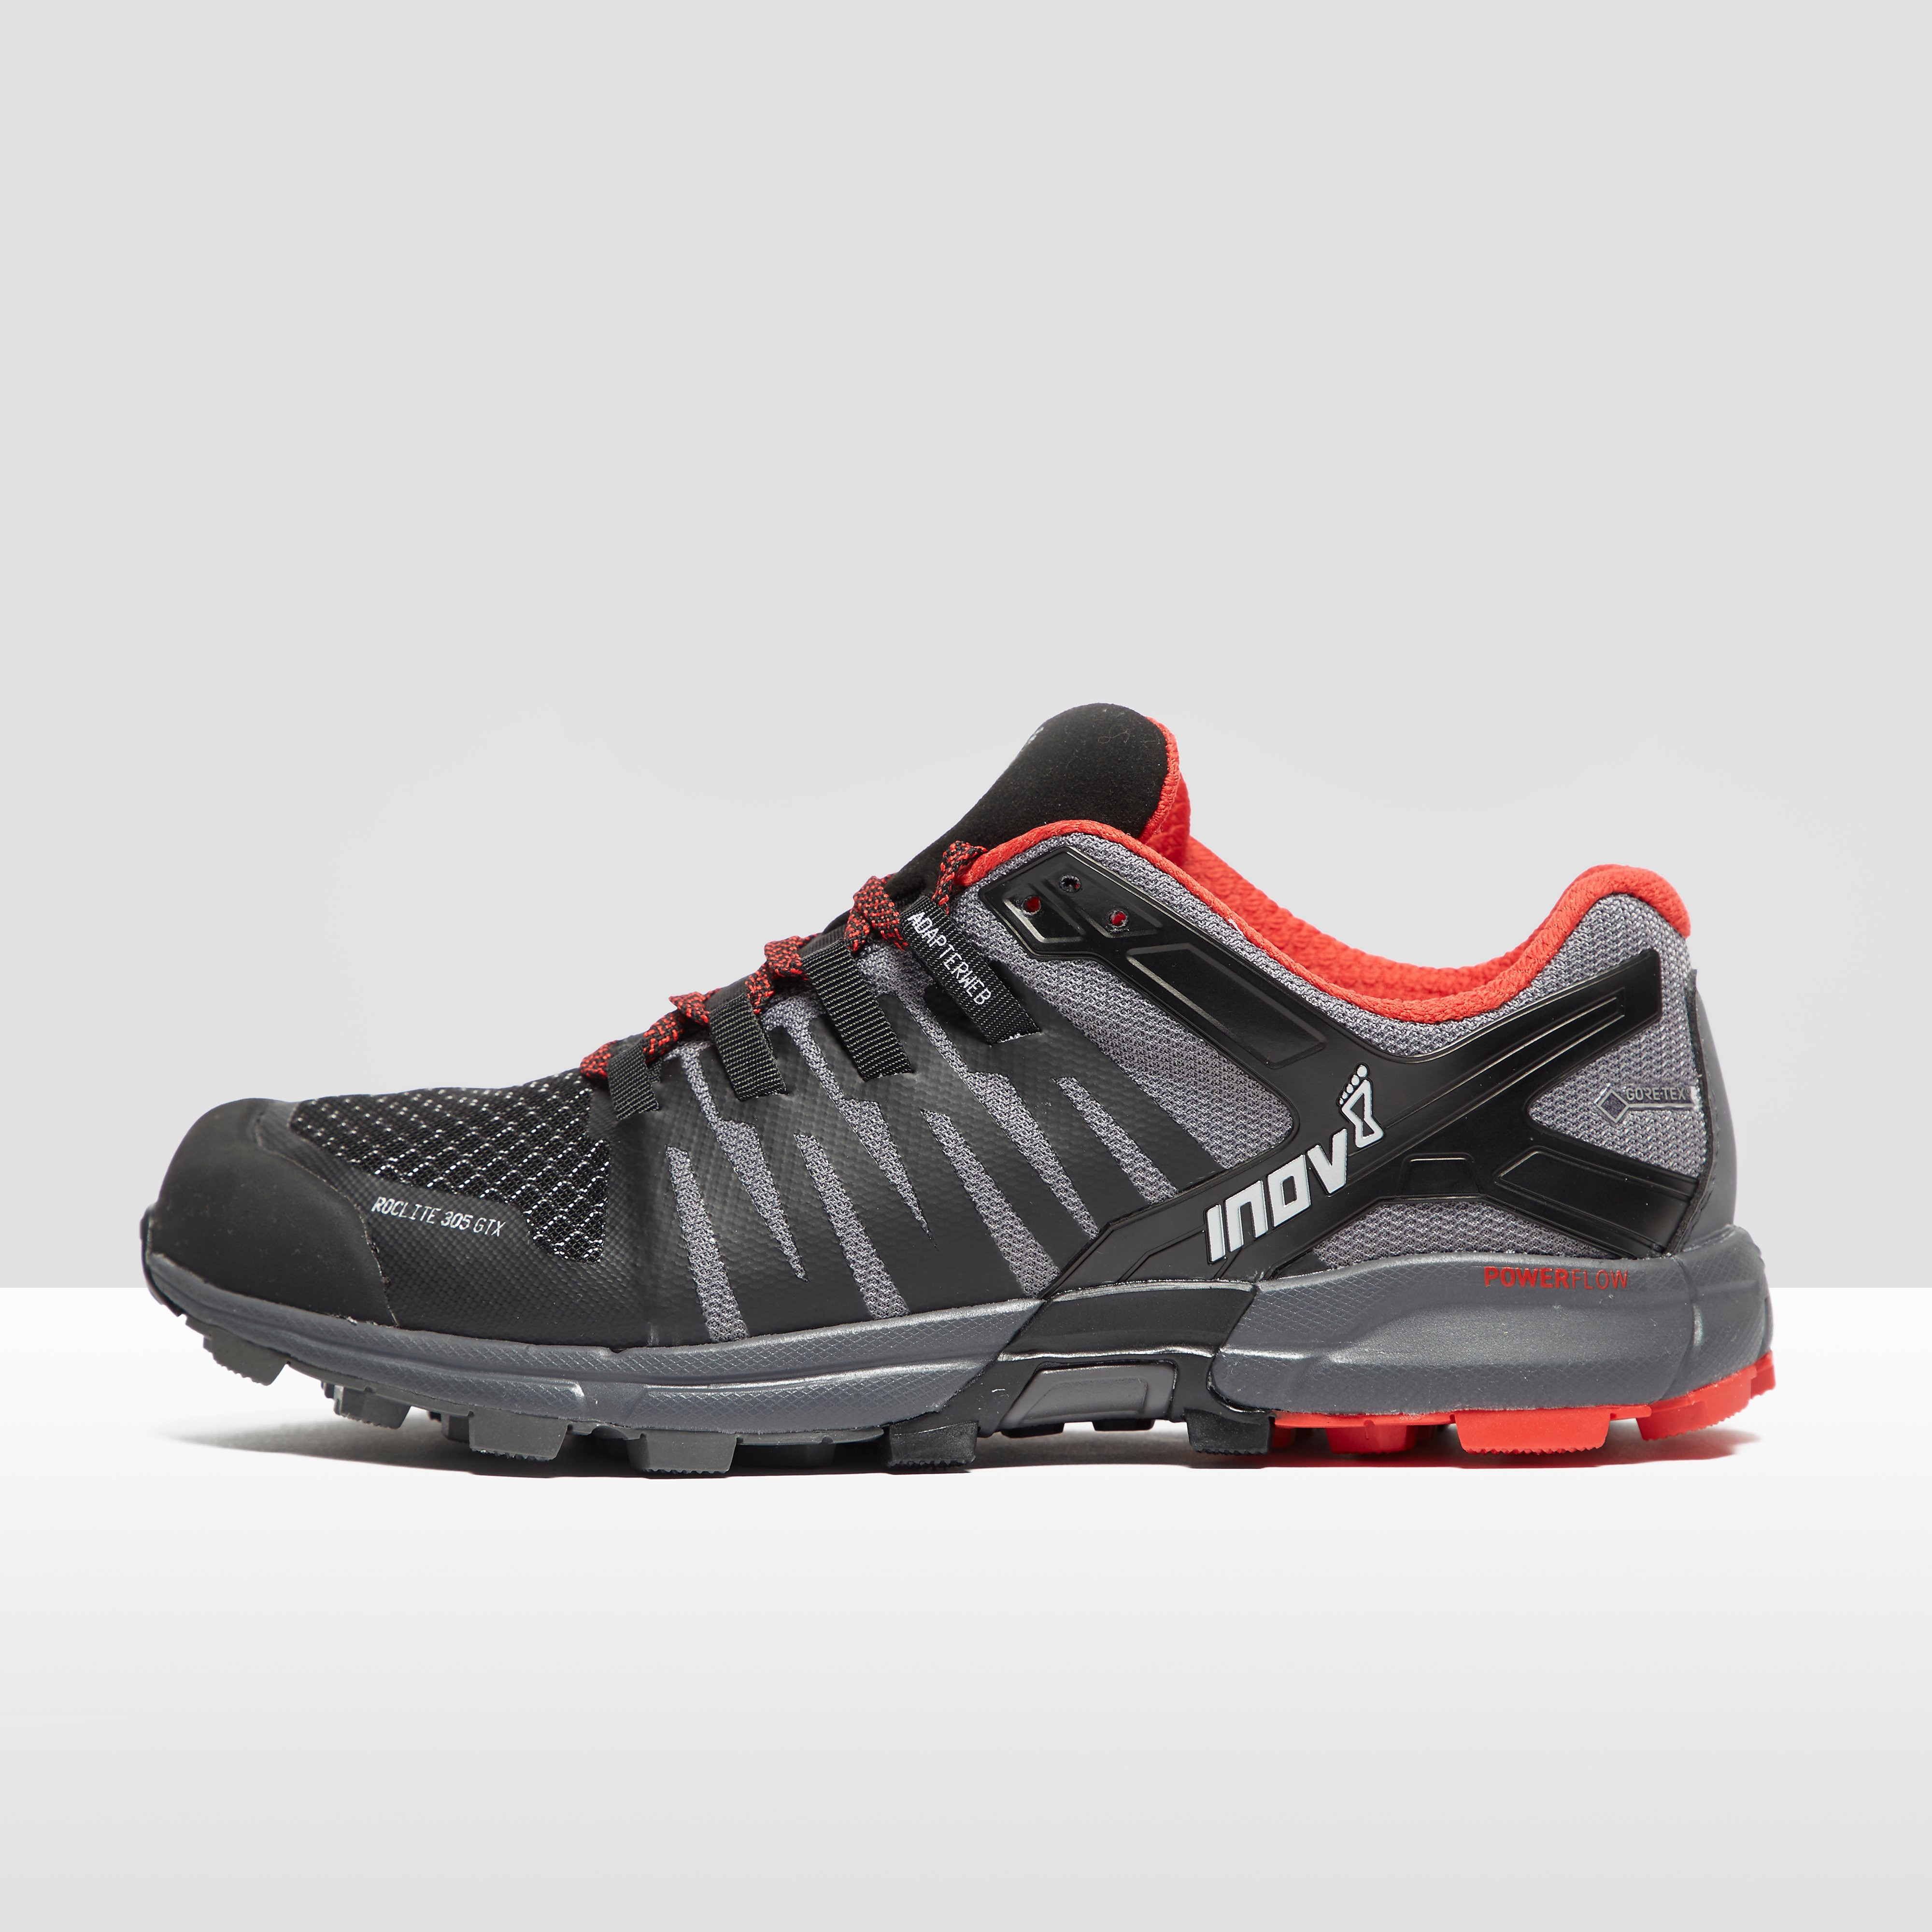 Inov-8 ROCLITE 305 GTX Men's Trail Running Shoes